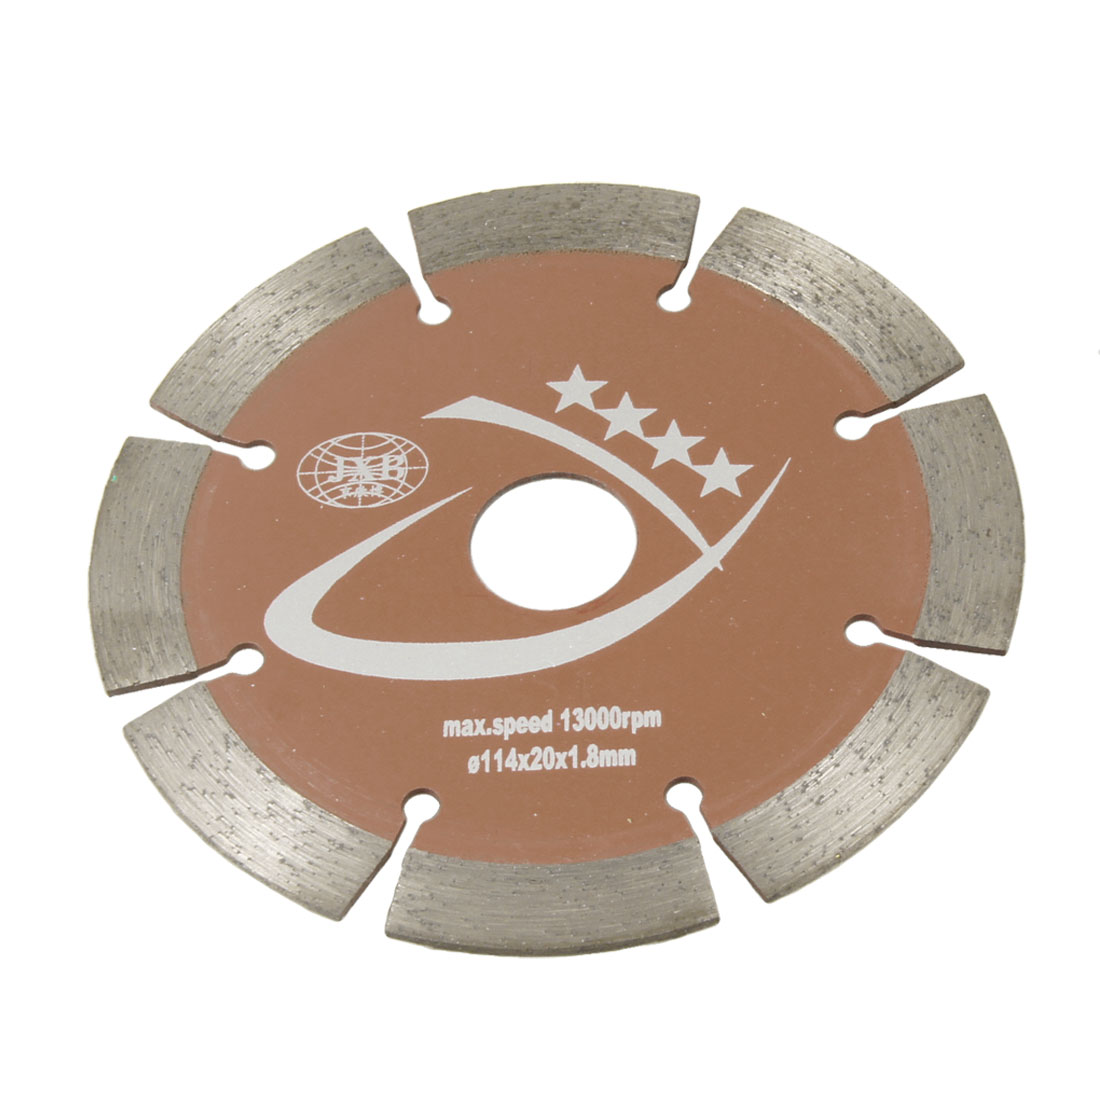 114mm x 20mm x 1.8mm Diamond Circular Crack Disc Saw Cutter for Tile Stone